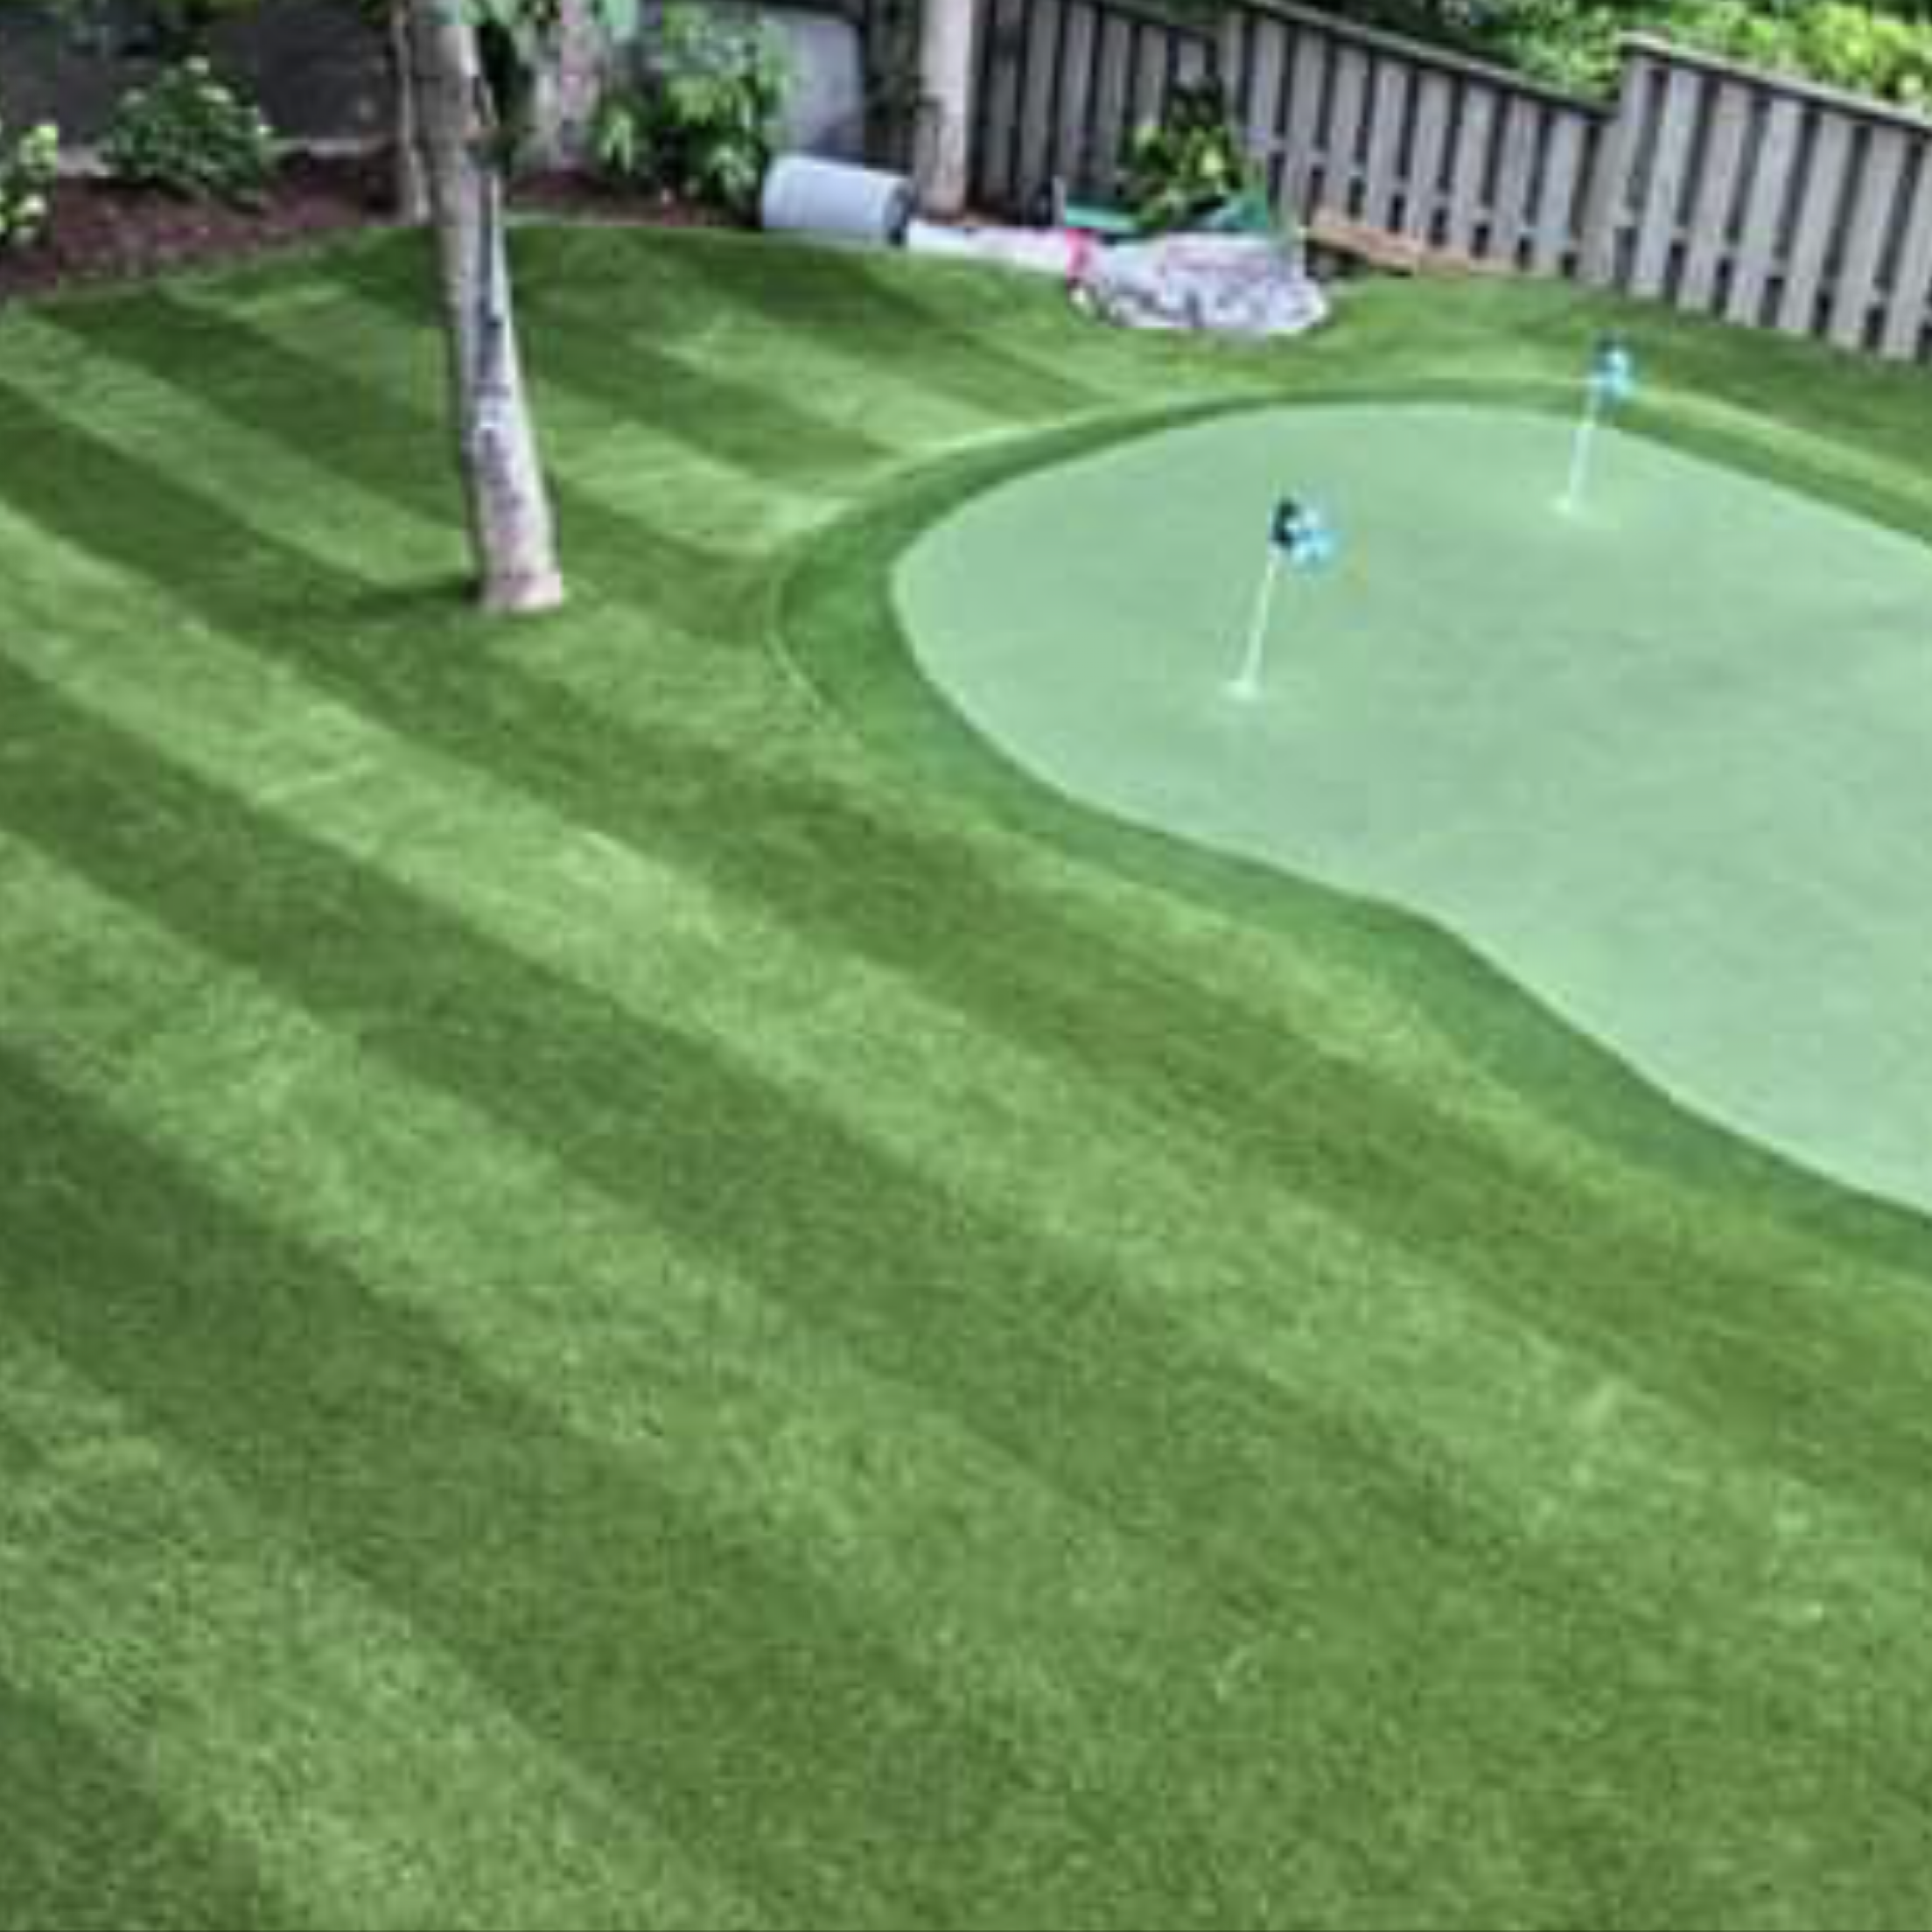 Putt-46 BiColor fake grass for yard,backyard turf,turf backyard,turf yard,fake grass for backyard,fake green grass,green grass carpet,artificial grass installation,artificial turf installation,turf installation,synthetic grass installation,fake grass installation